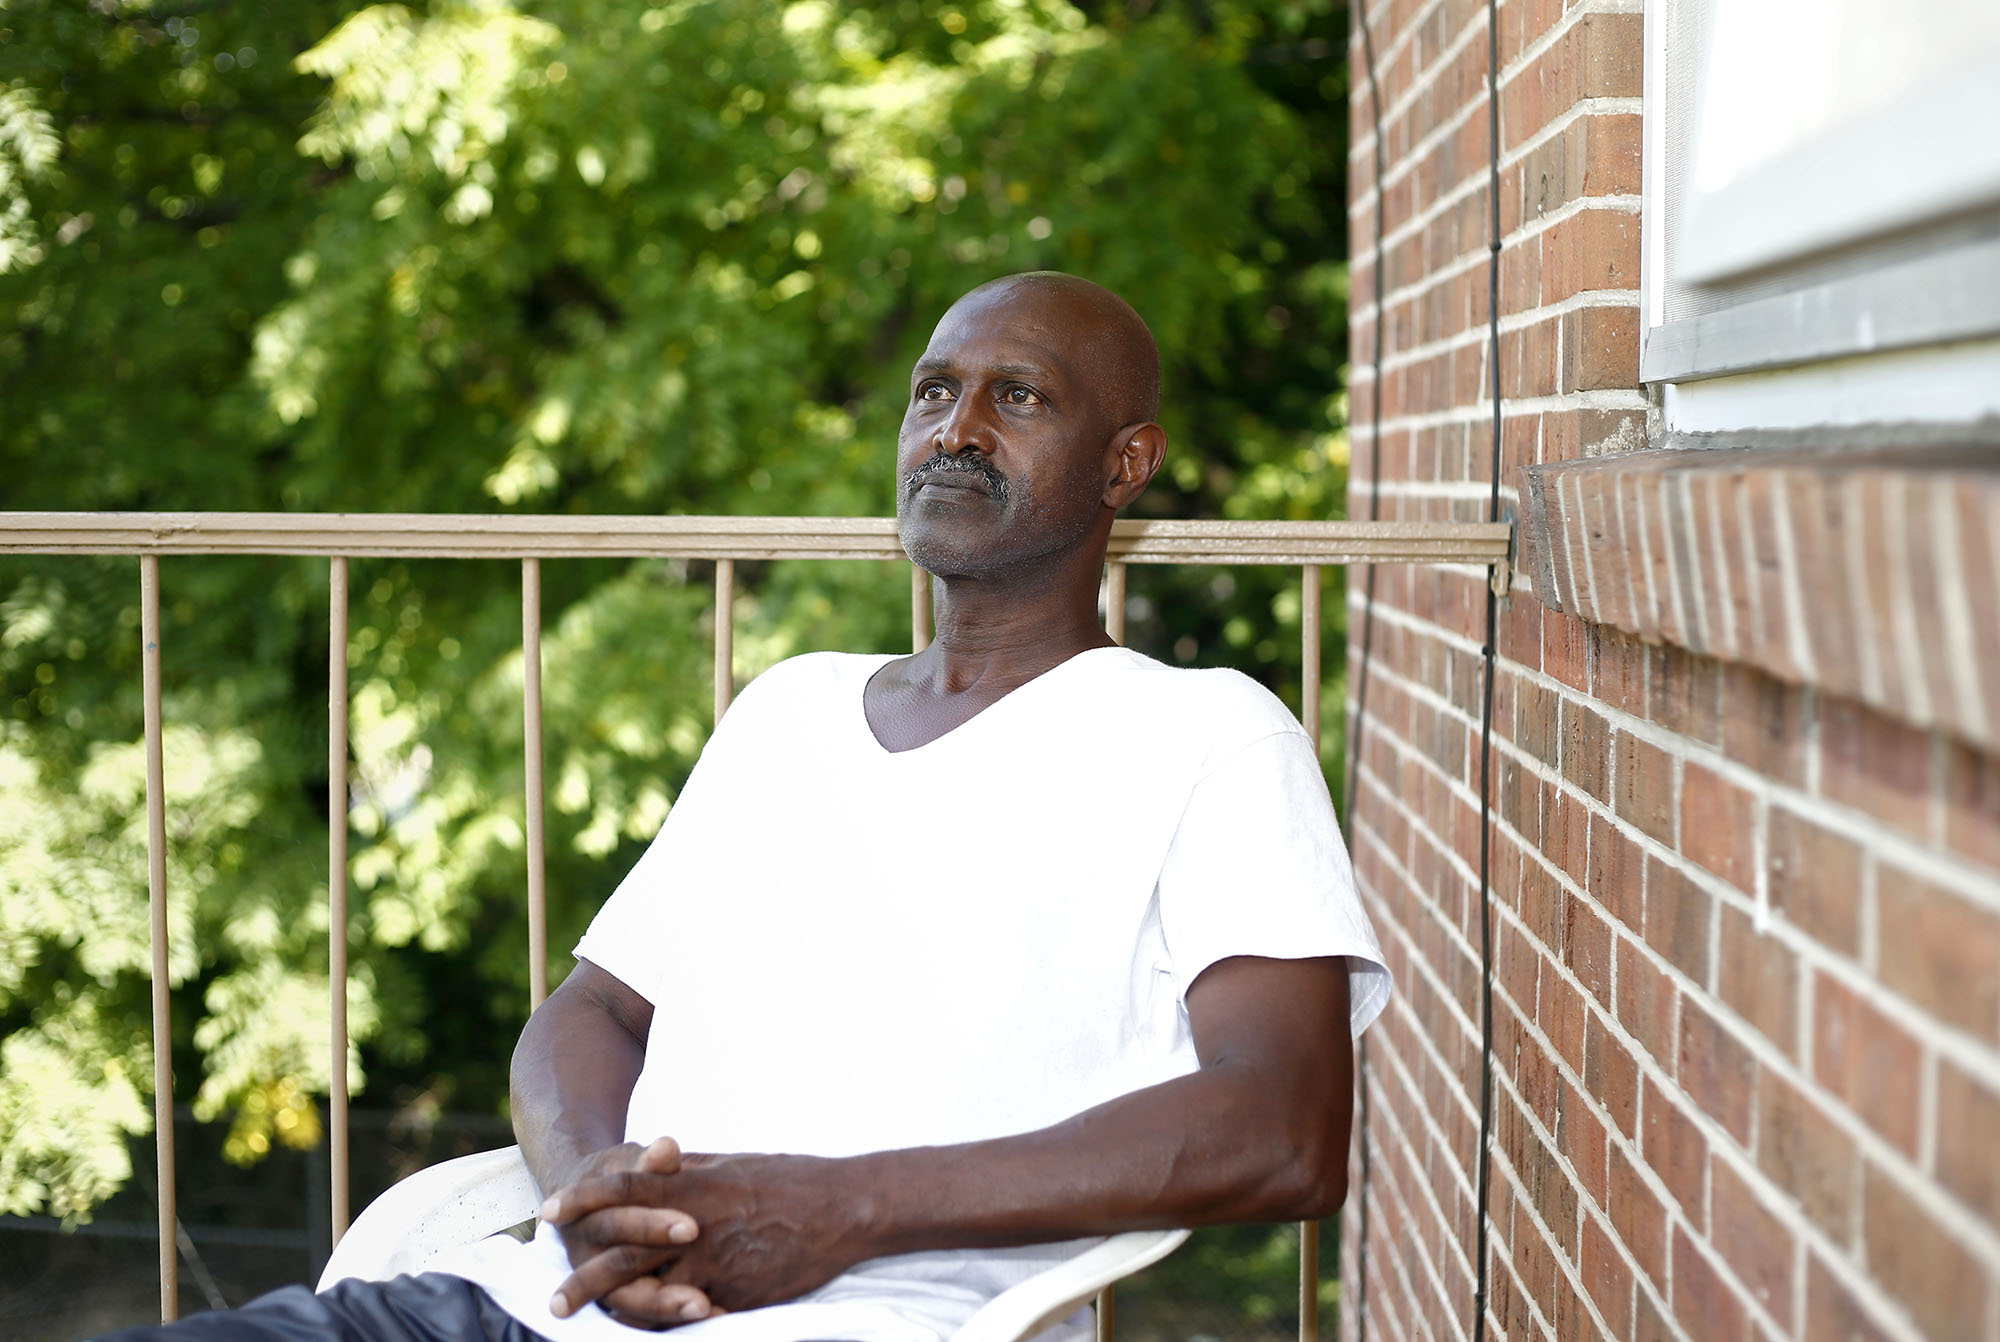 Nathaniel Bryant sits on the balcony of his home after having his voting rights restored by Gov. Terry McAuliffe, 43 years after becoming a convicted felon and losing his right to vote.